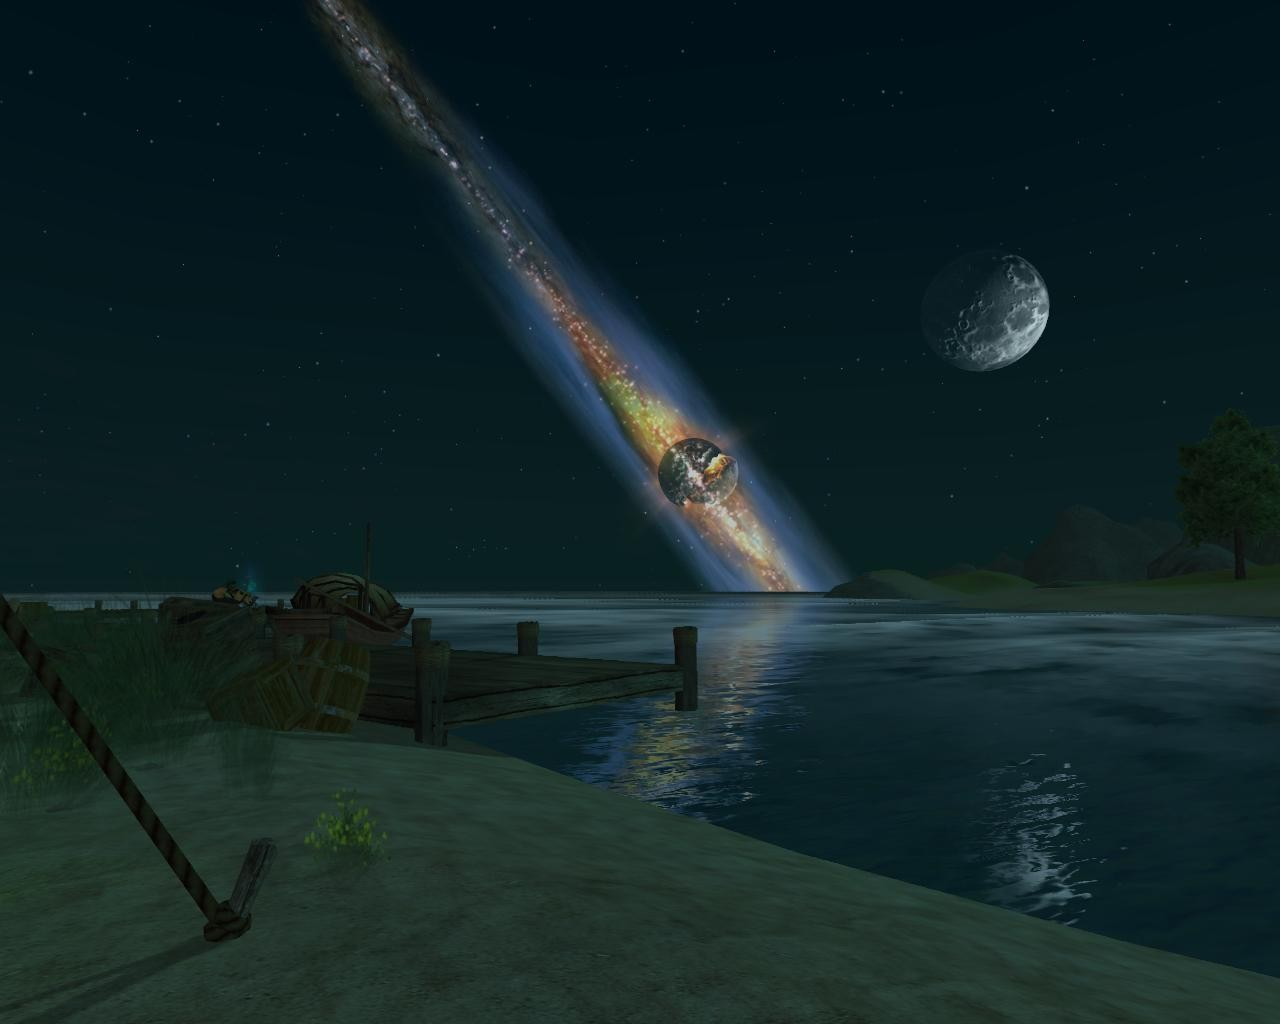 EverQuest II - The dock at the Island of Mara at night